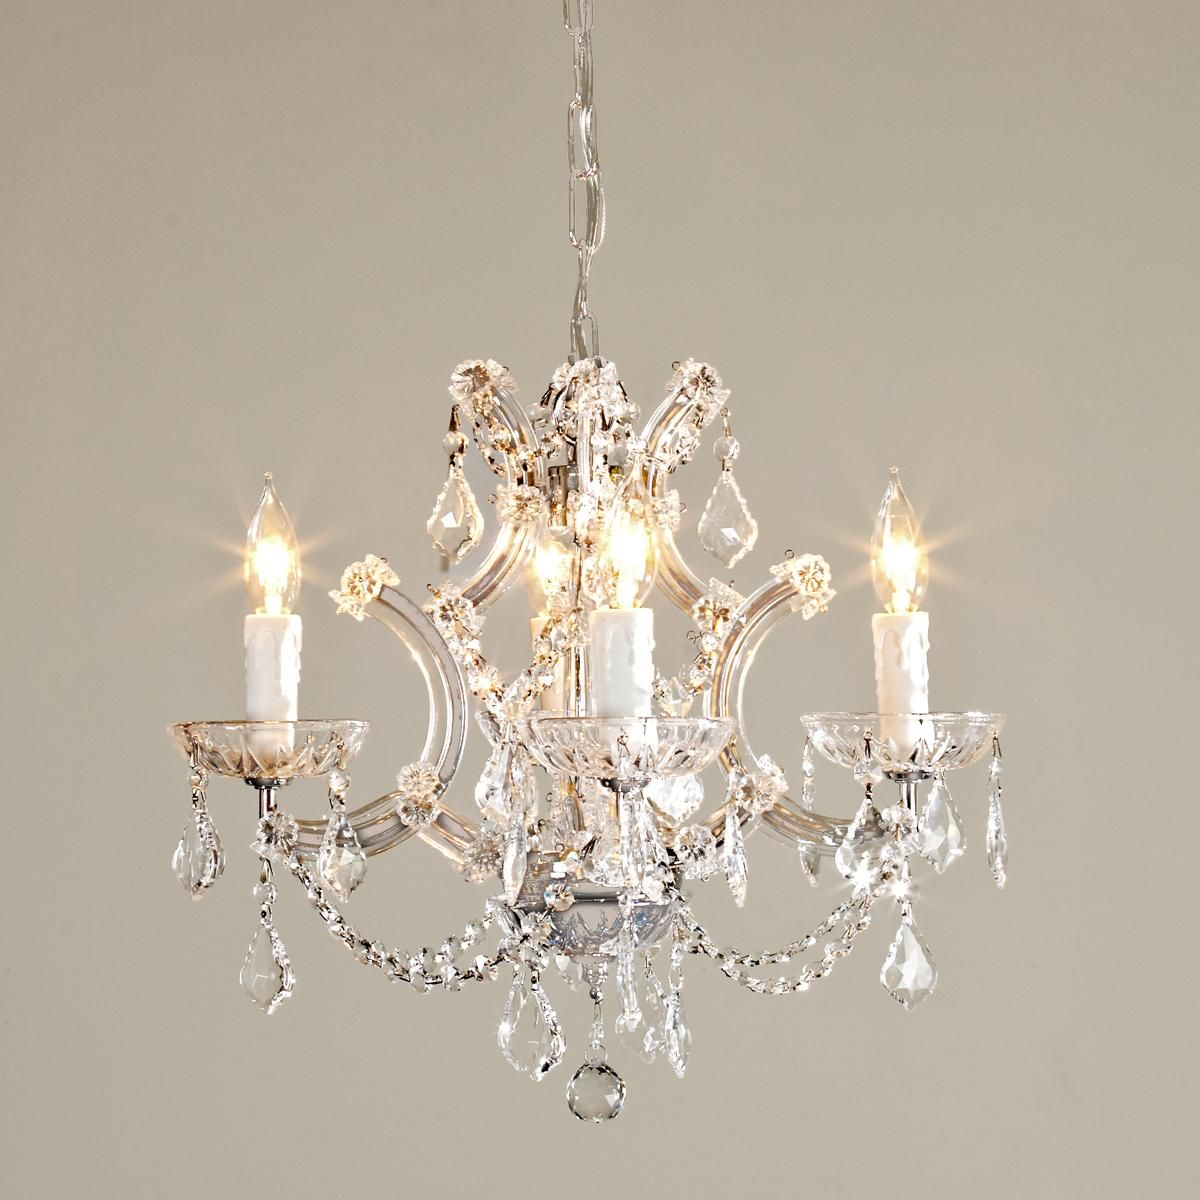 L This Is W X H This One Is Lovely And Would Be My First - Mini chandelier for bathroom for bathroom decor ideas